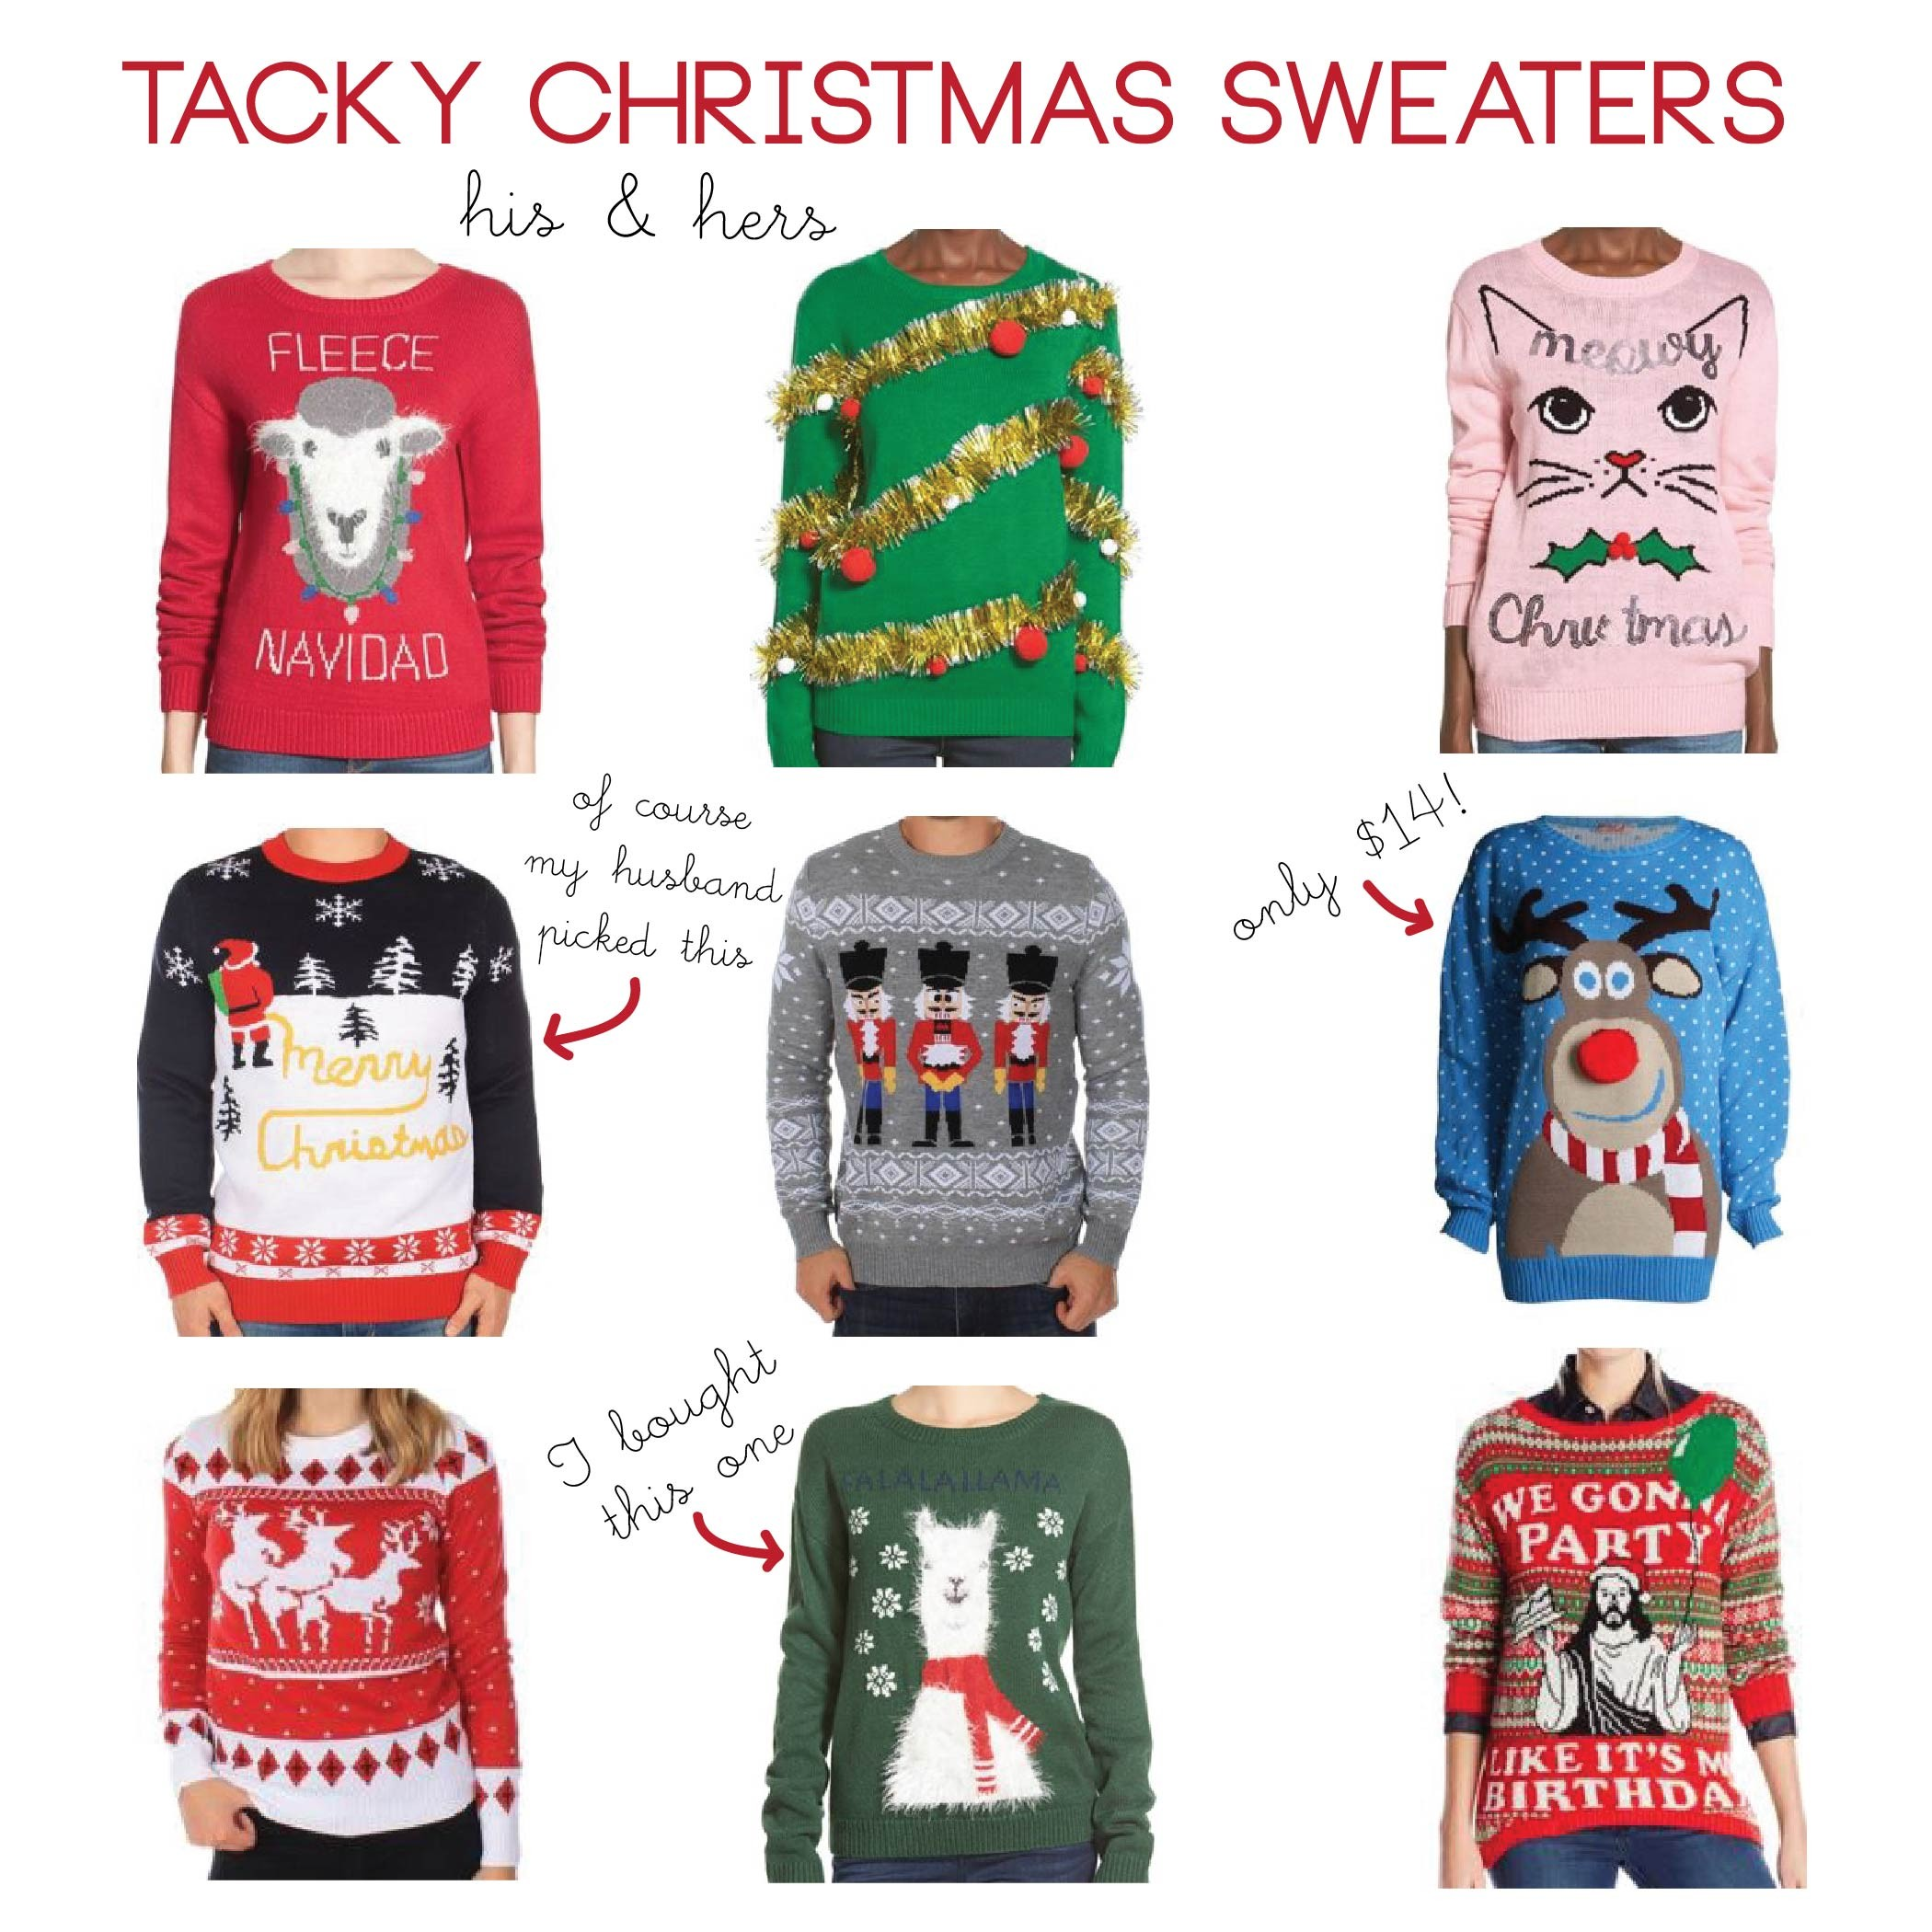 His and Hers Tacky Christmas Sweaters - Straight A Style